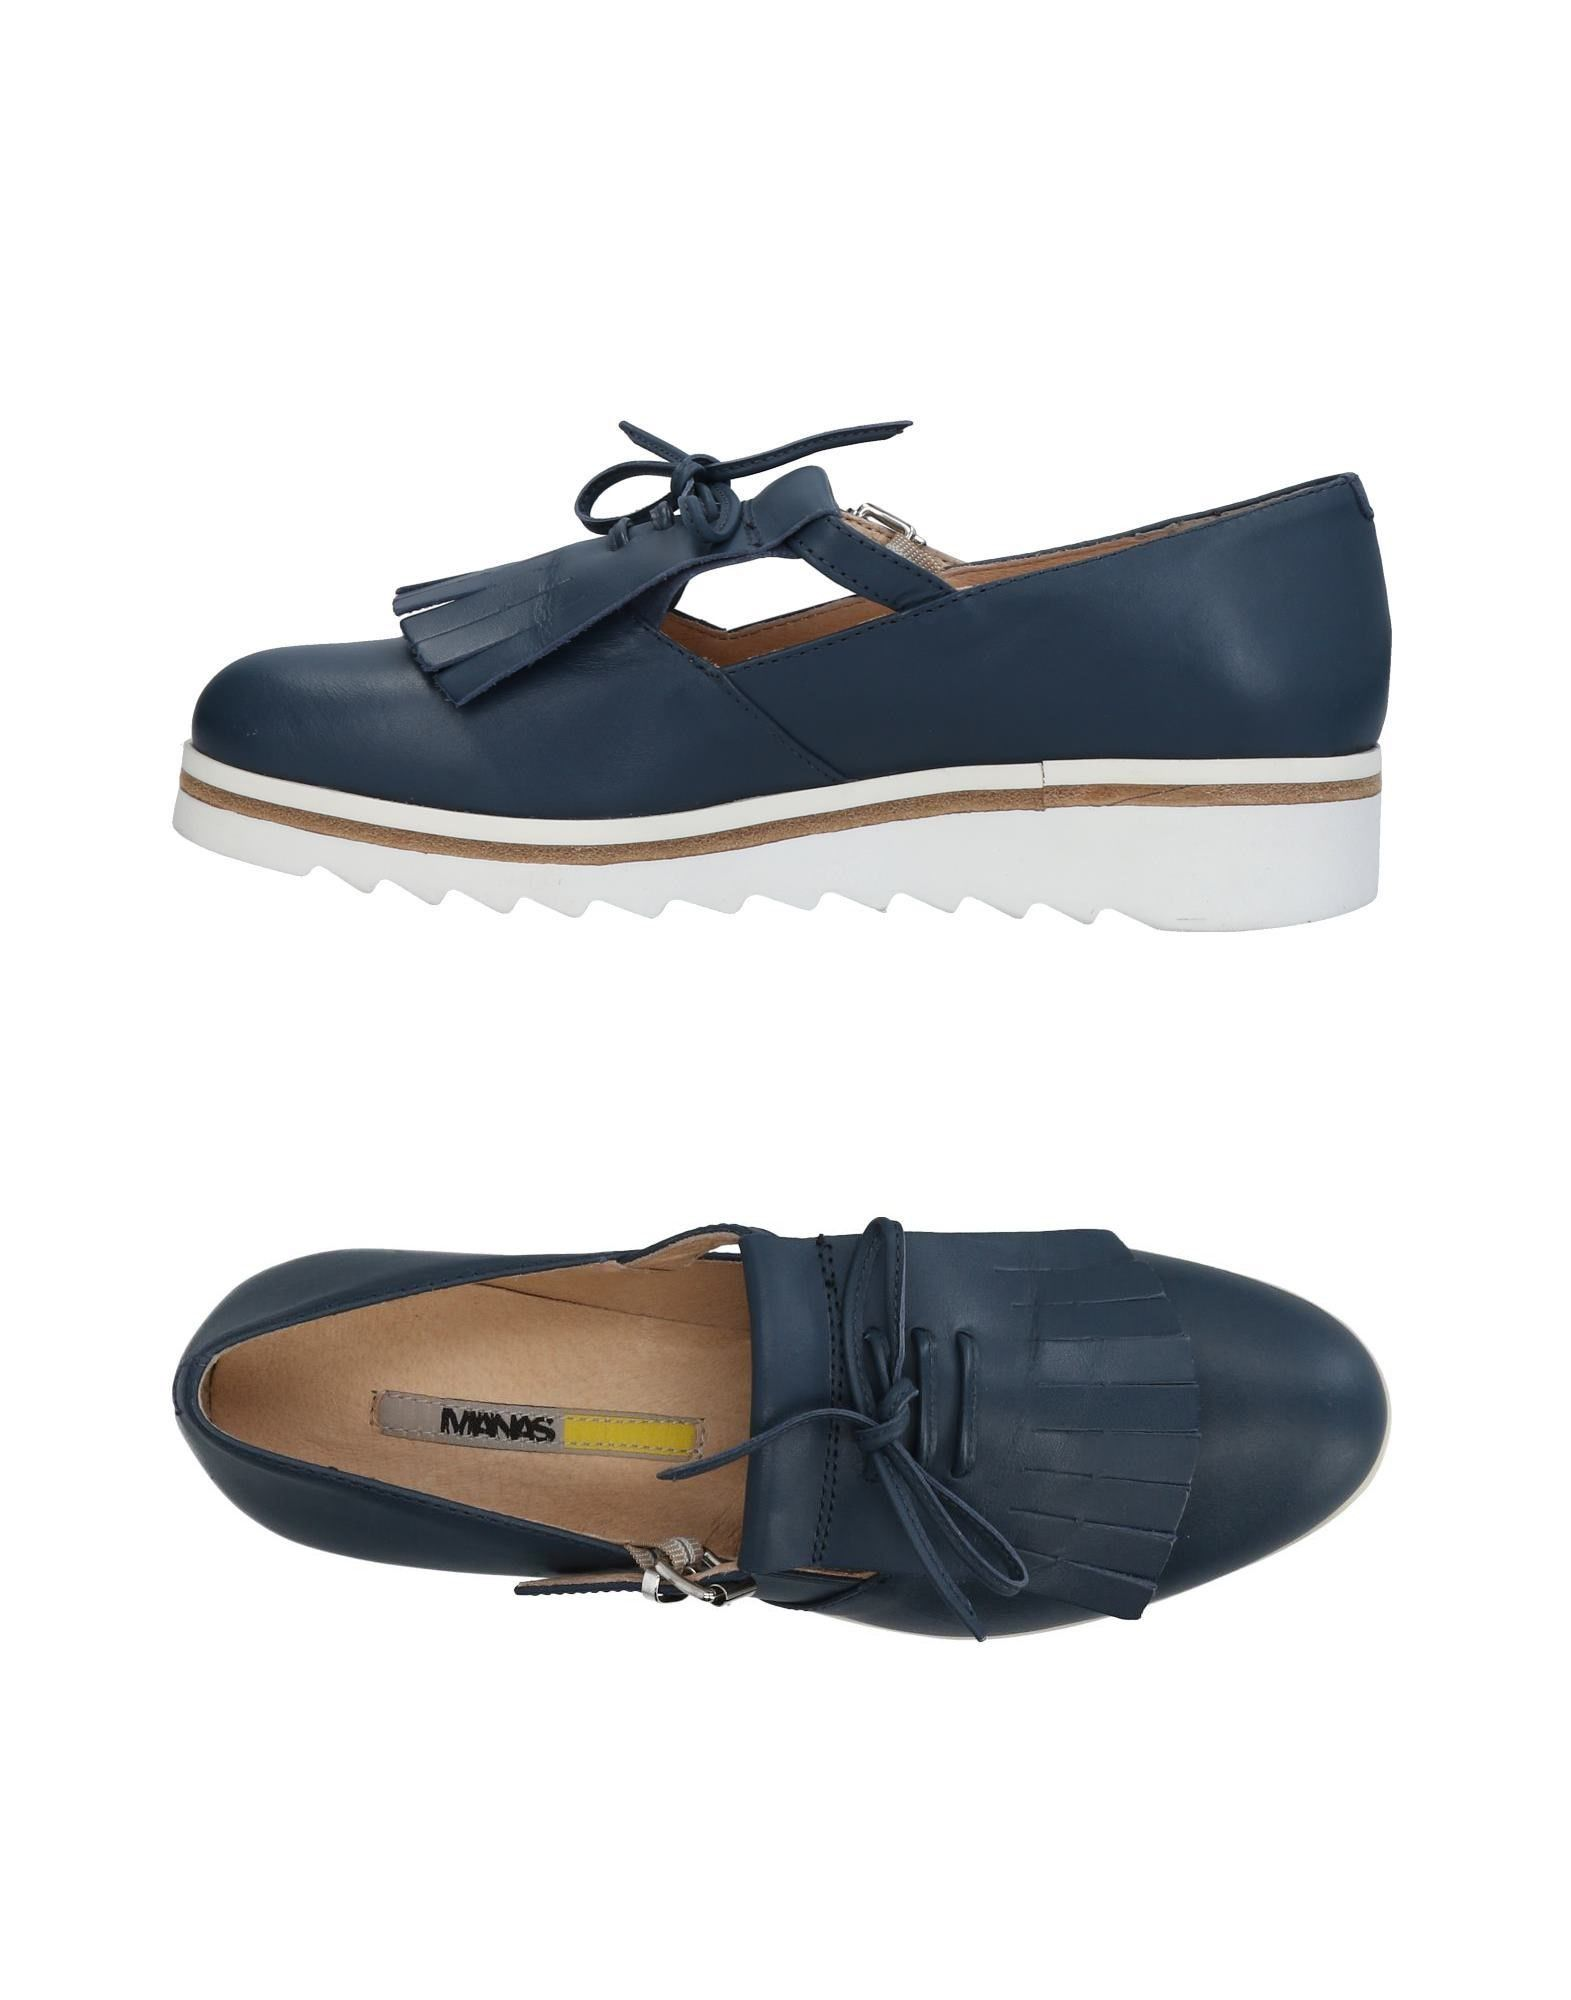 MANAS Loafers in Slate Blue